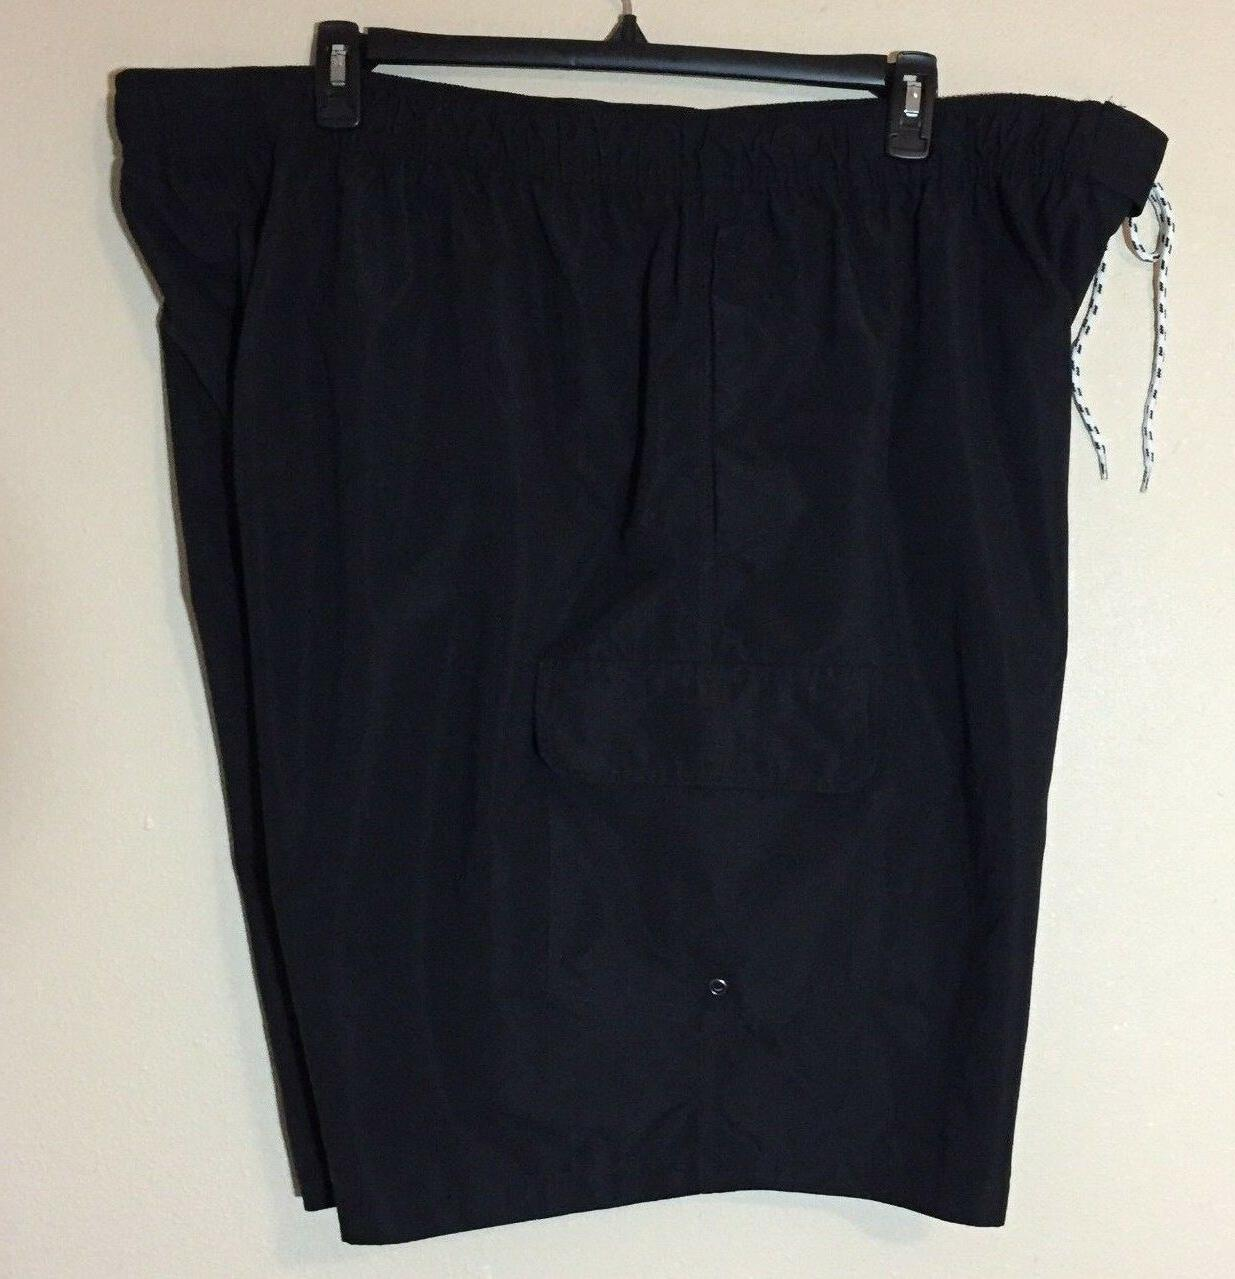 Foundry Bathing Bottom Trunks Cargo Shorts Mens 4XL New